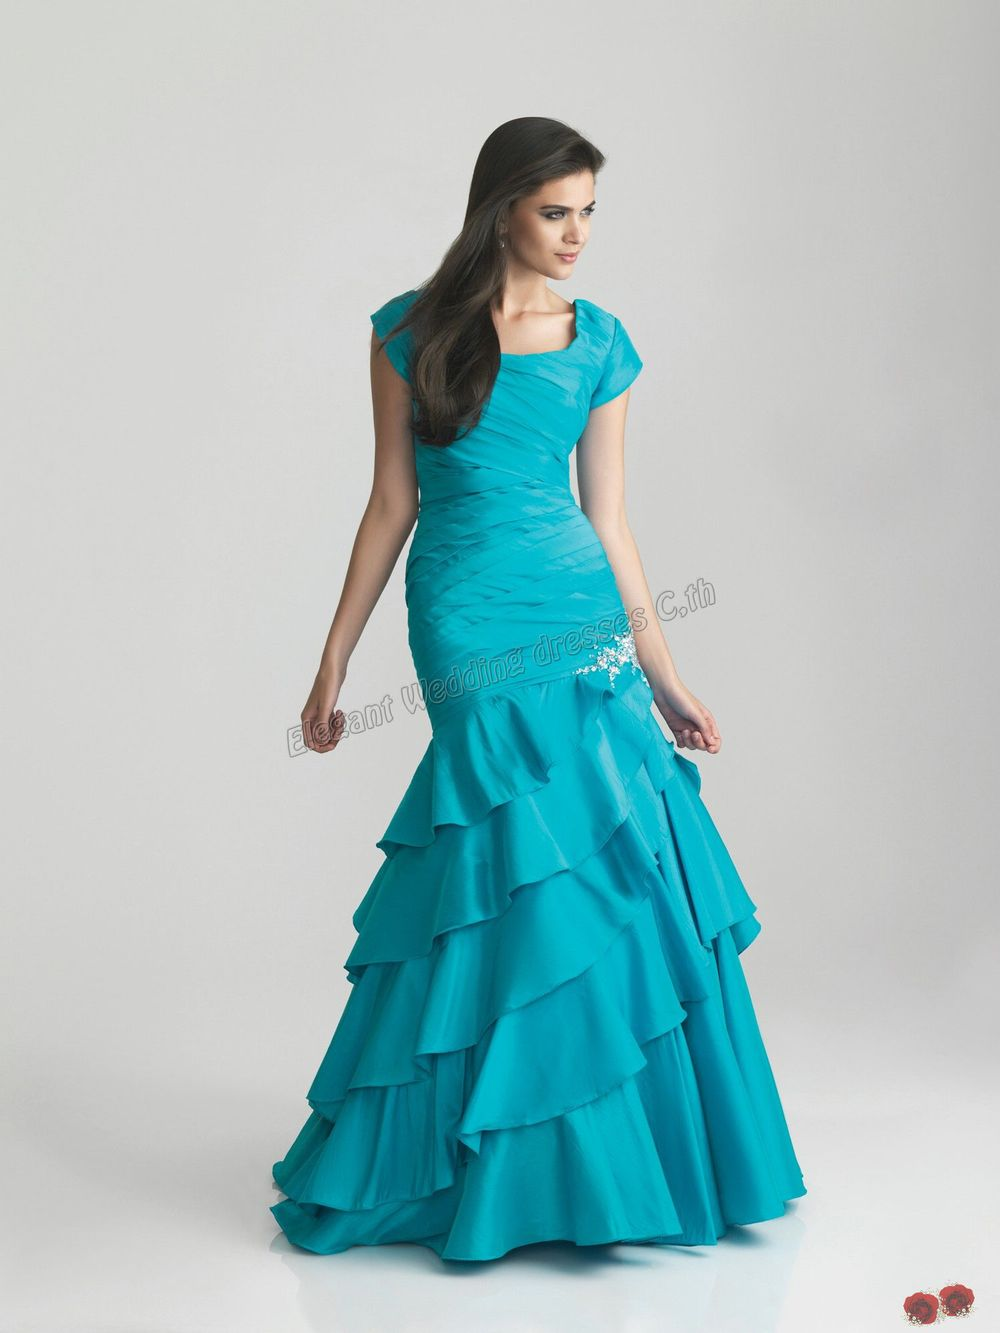 Modest prom dresses on sale eligent prom dresses for Modest wedding dresses for sale